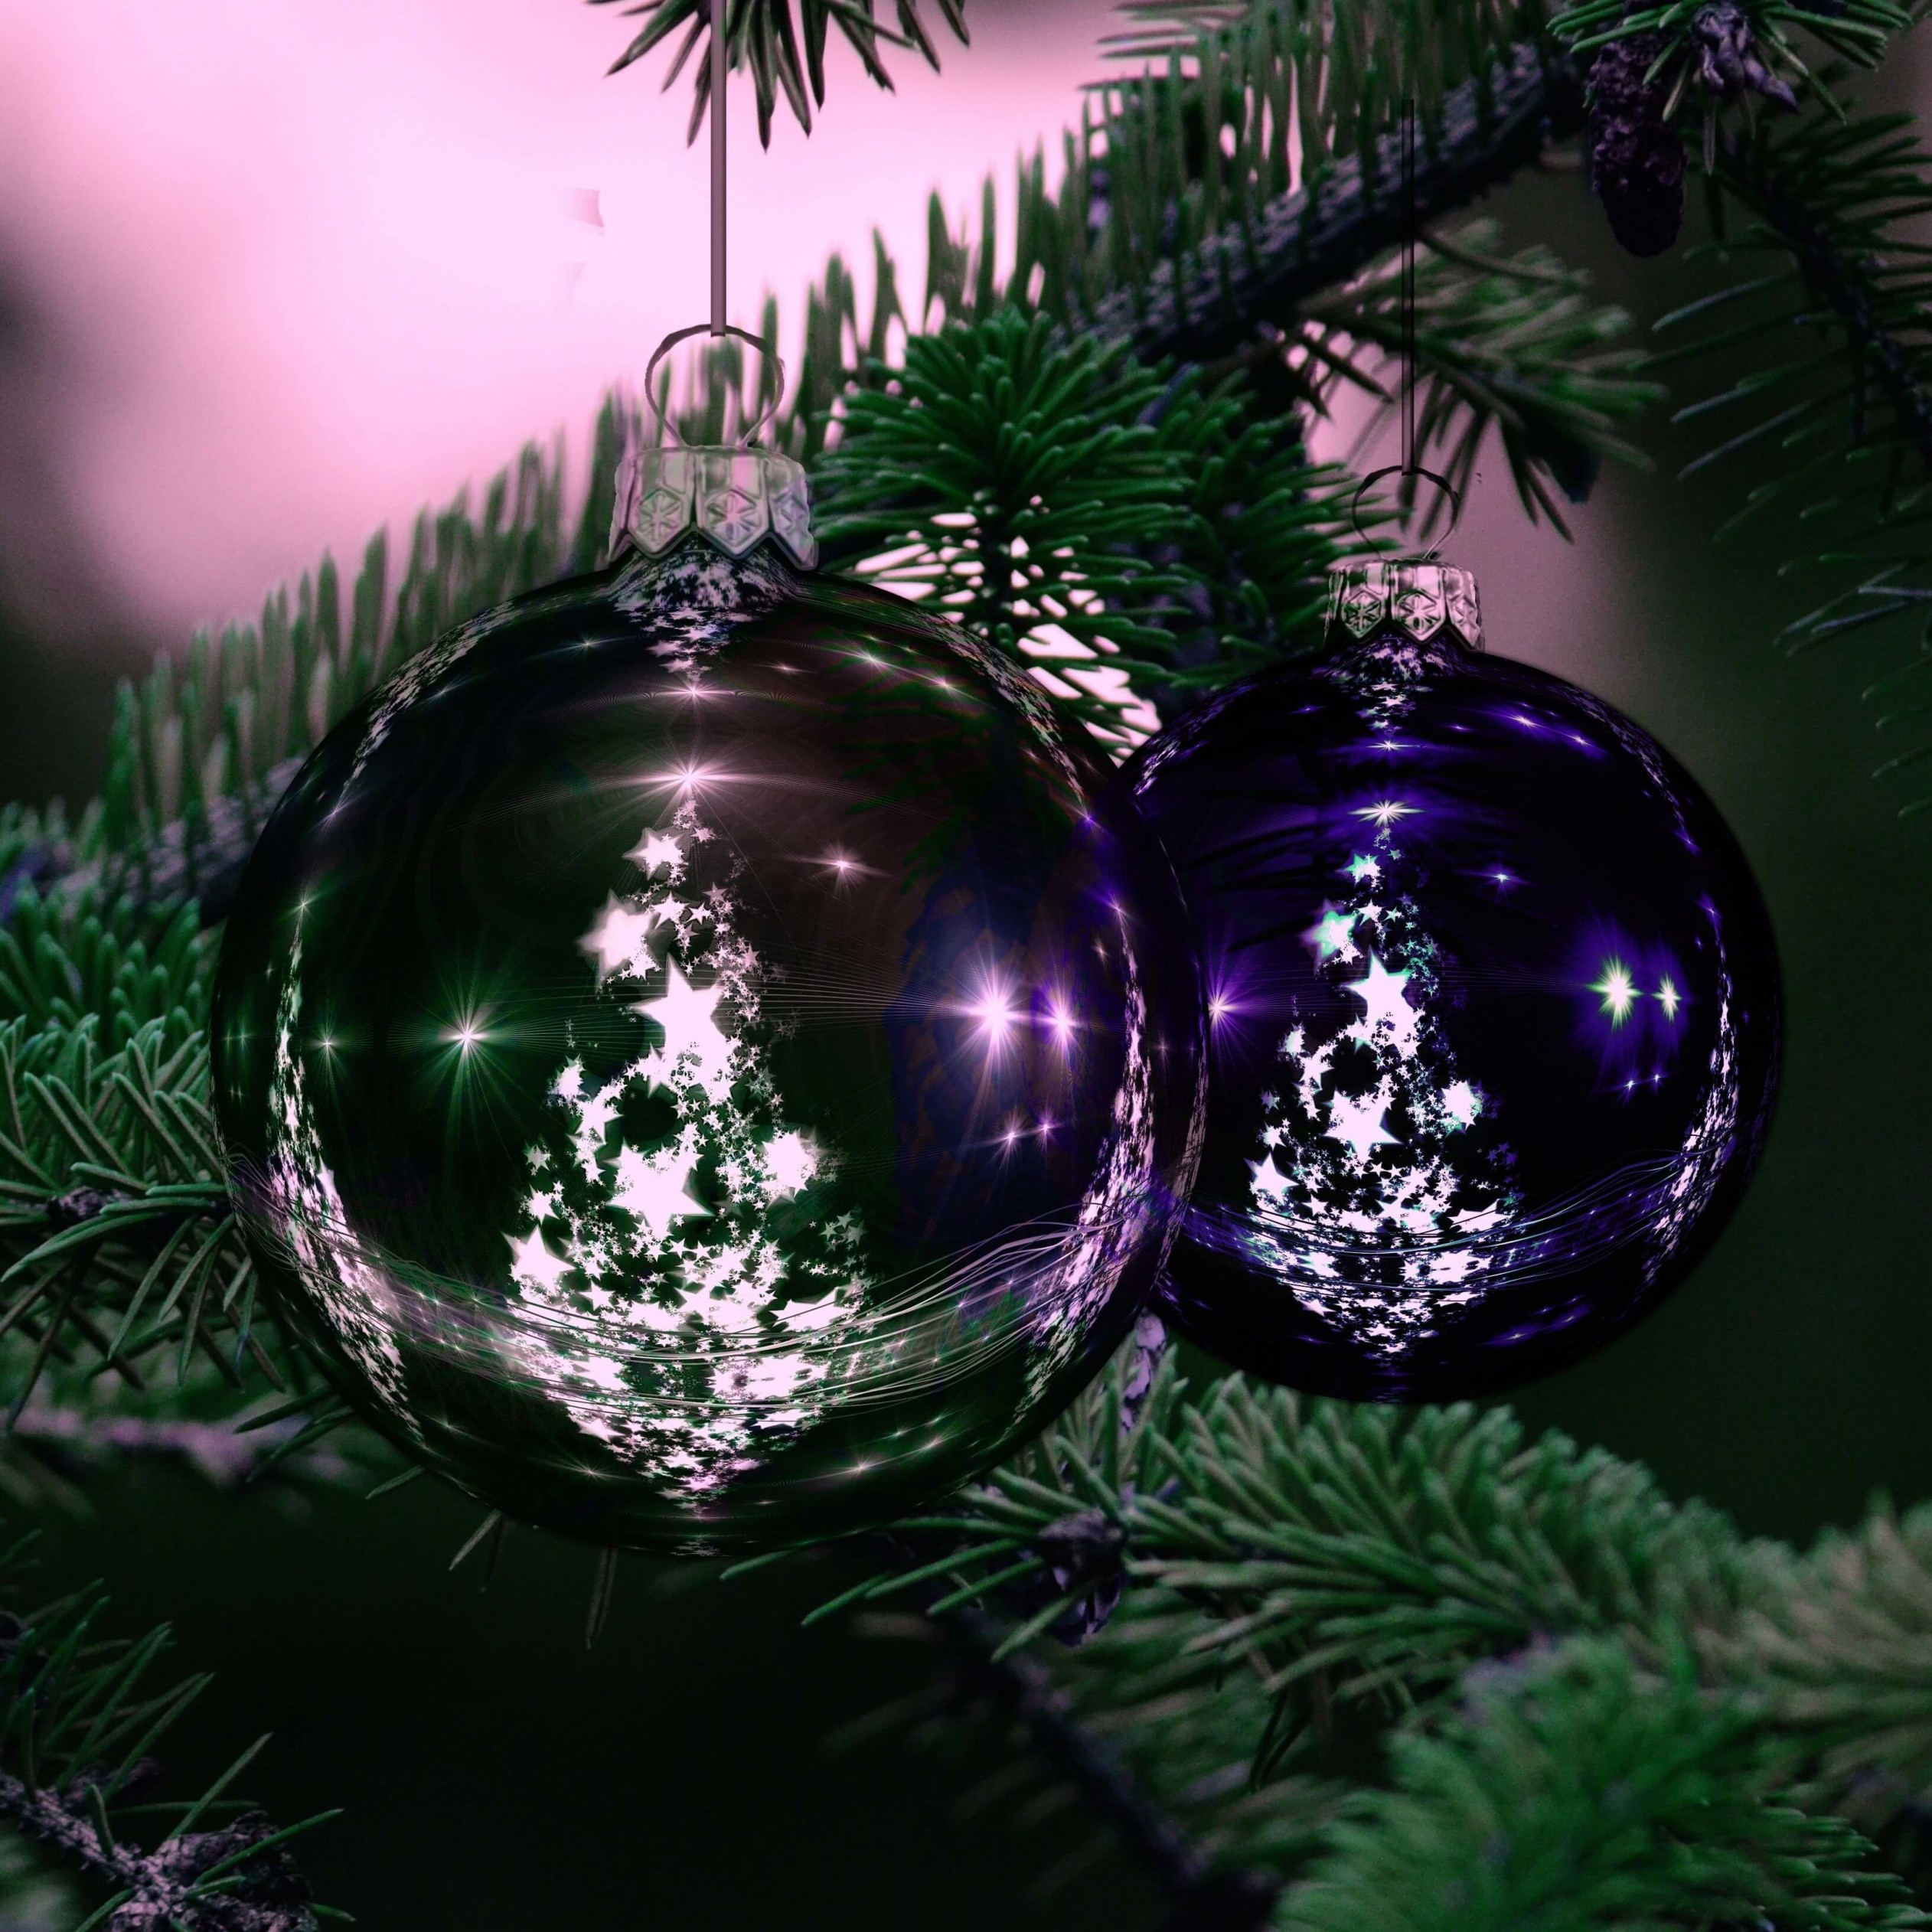 Beautiful Christmas Tree Ornaments Wallpaper for Apple iPad 4